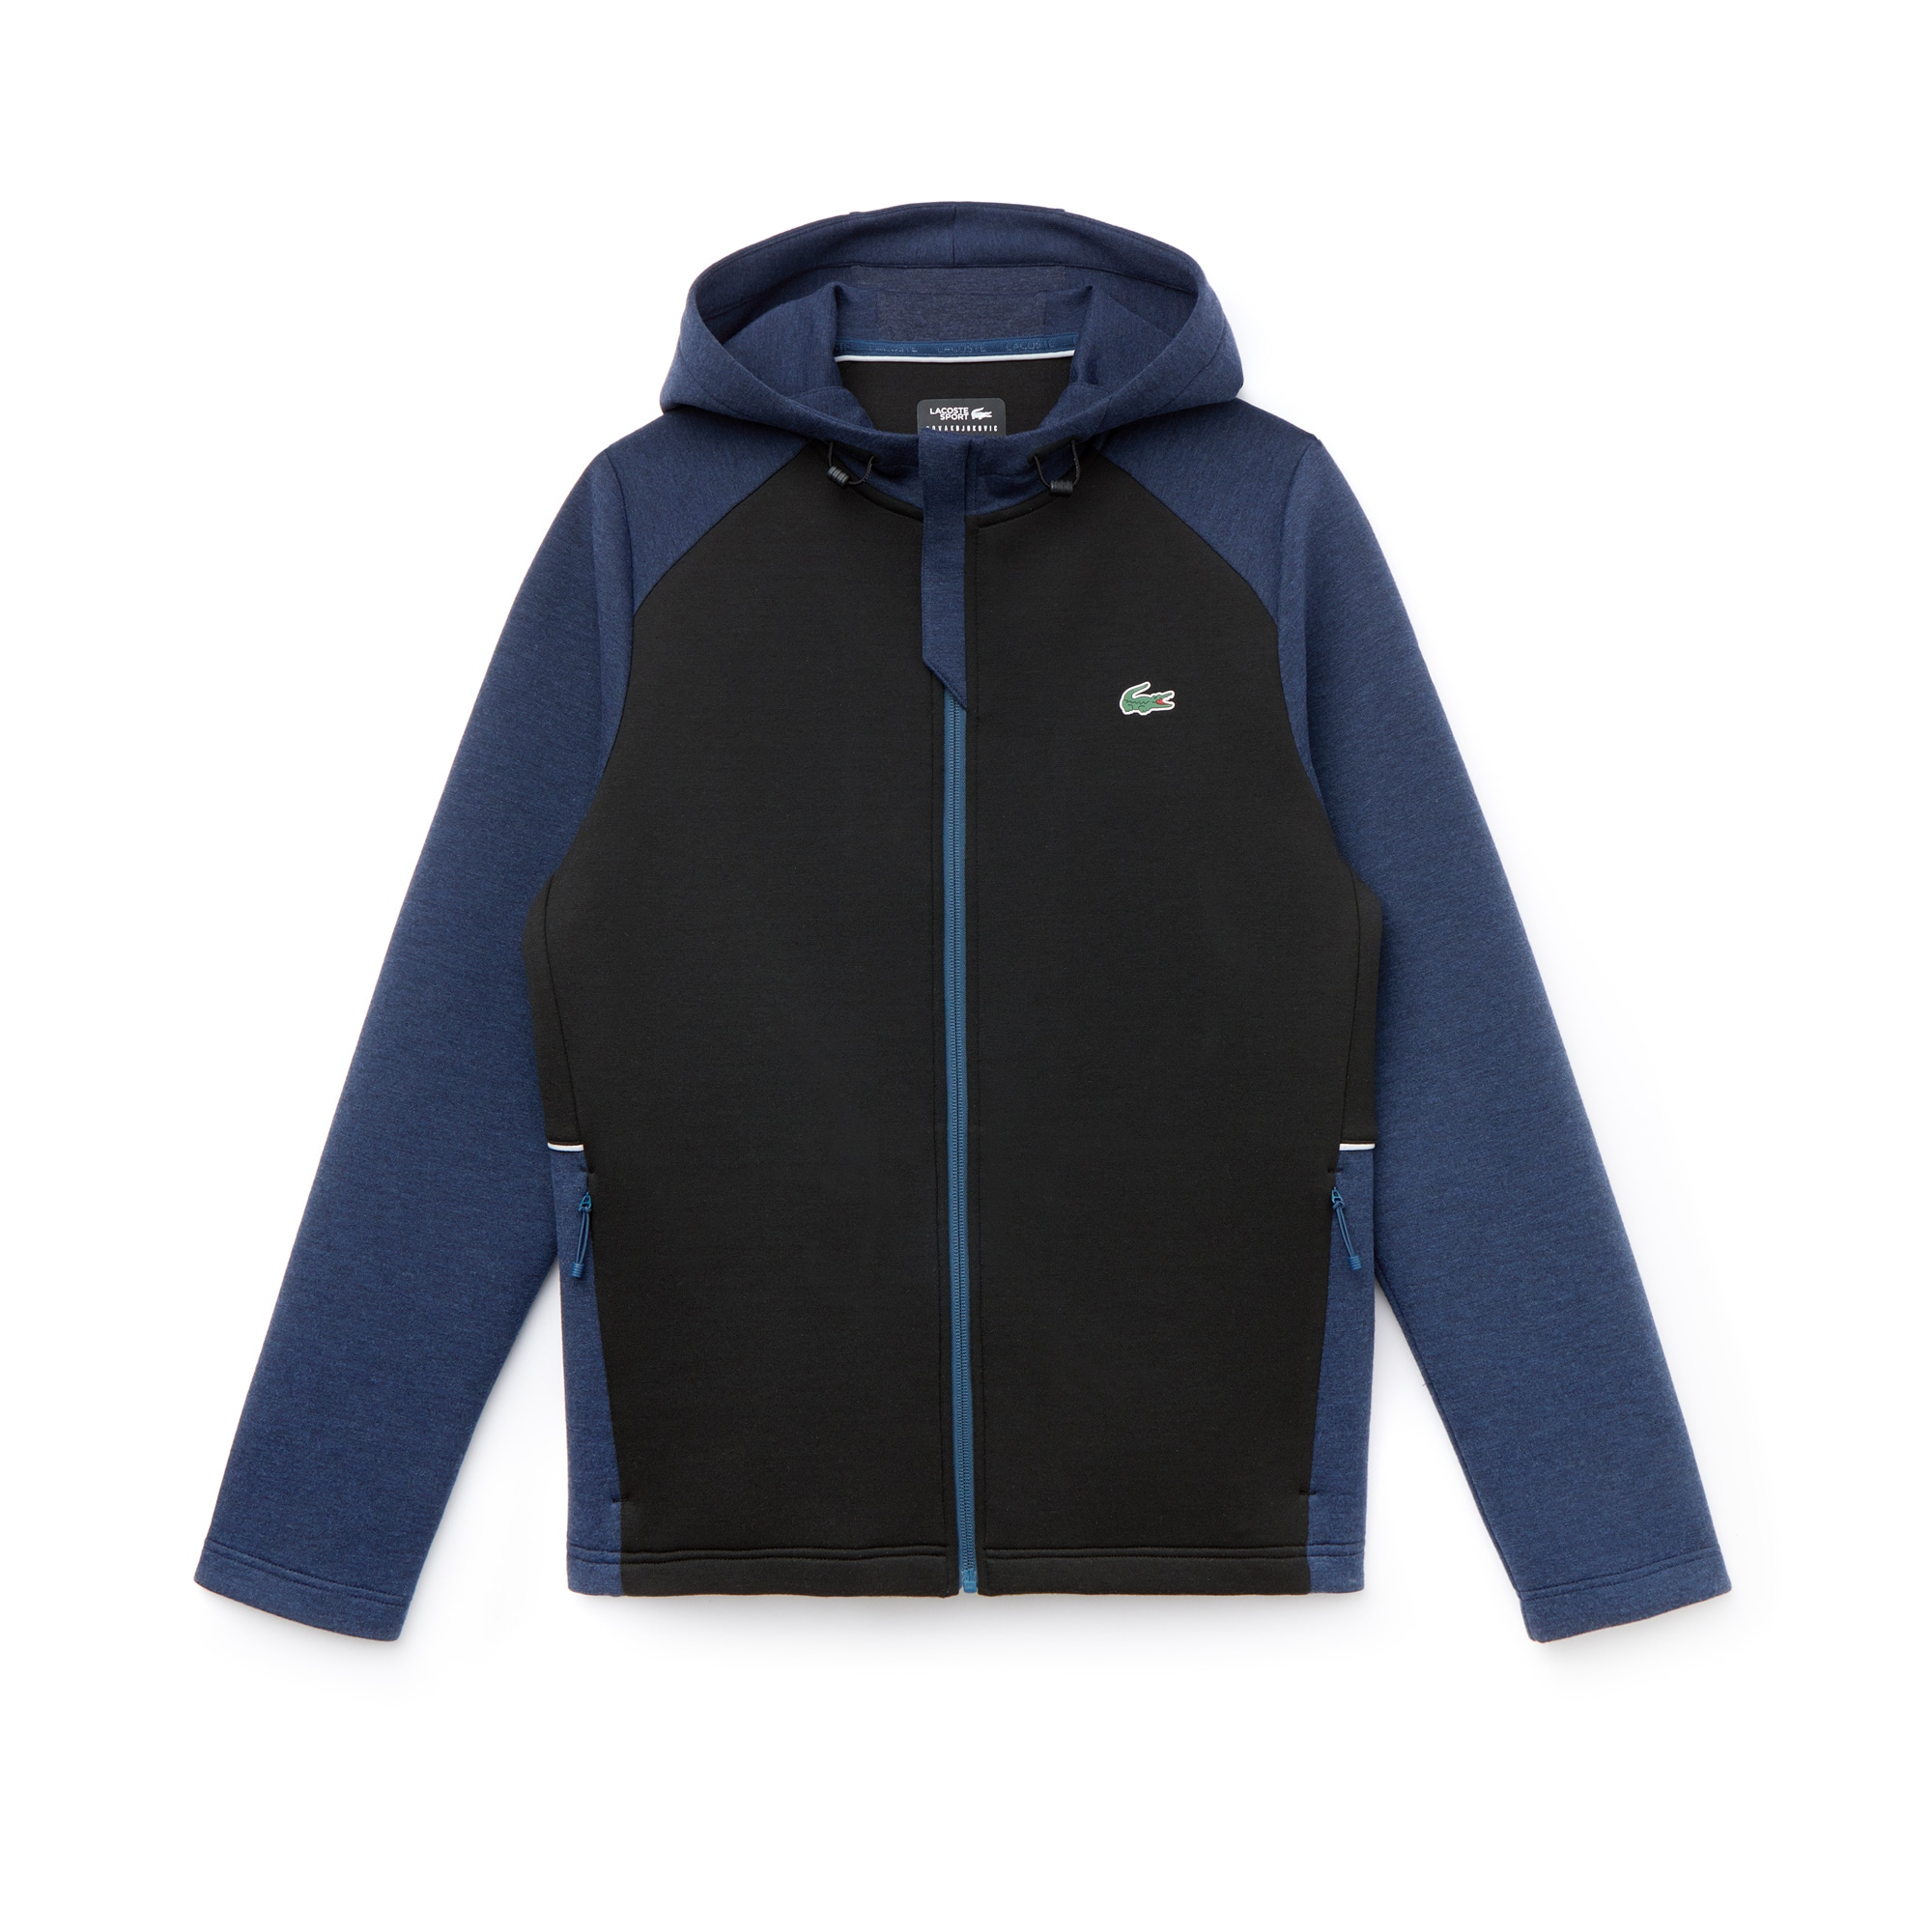 Men's SPORT Bicolour Technical Midlayer Hooded Sweatshirt - Novak Djokovic Collection